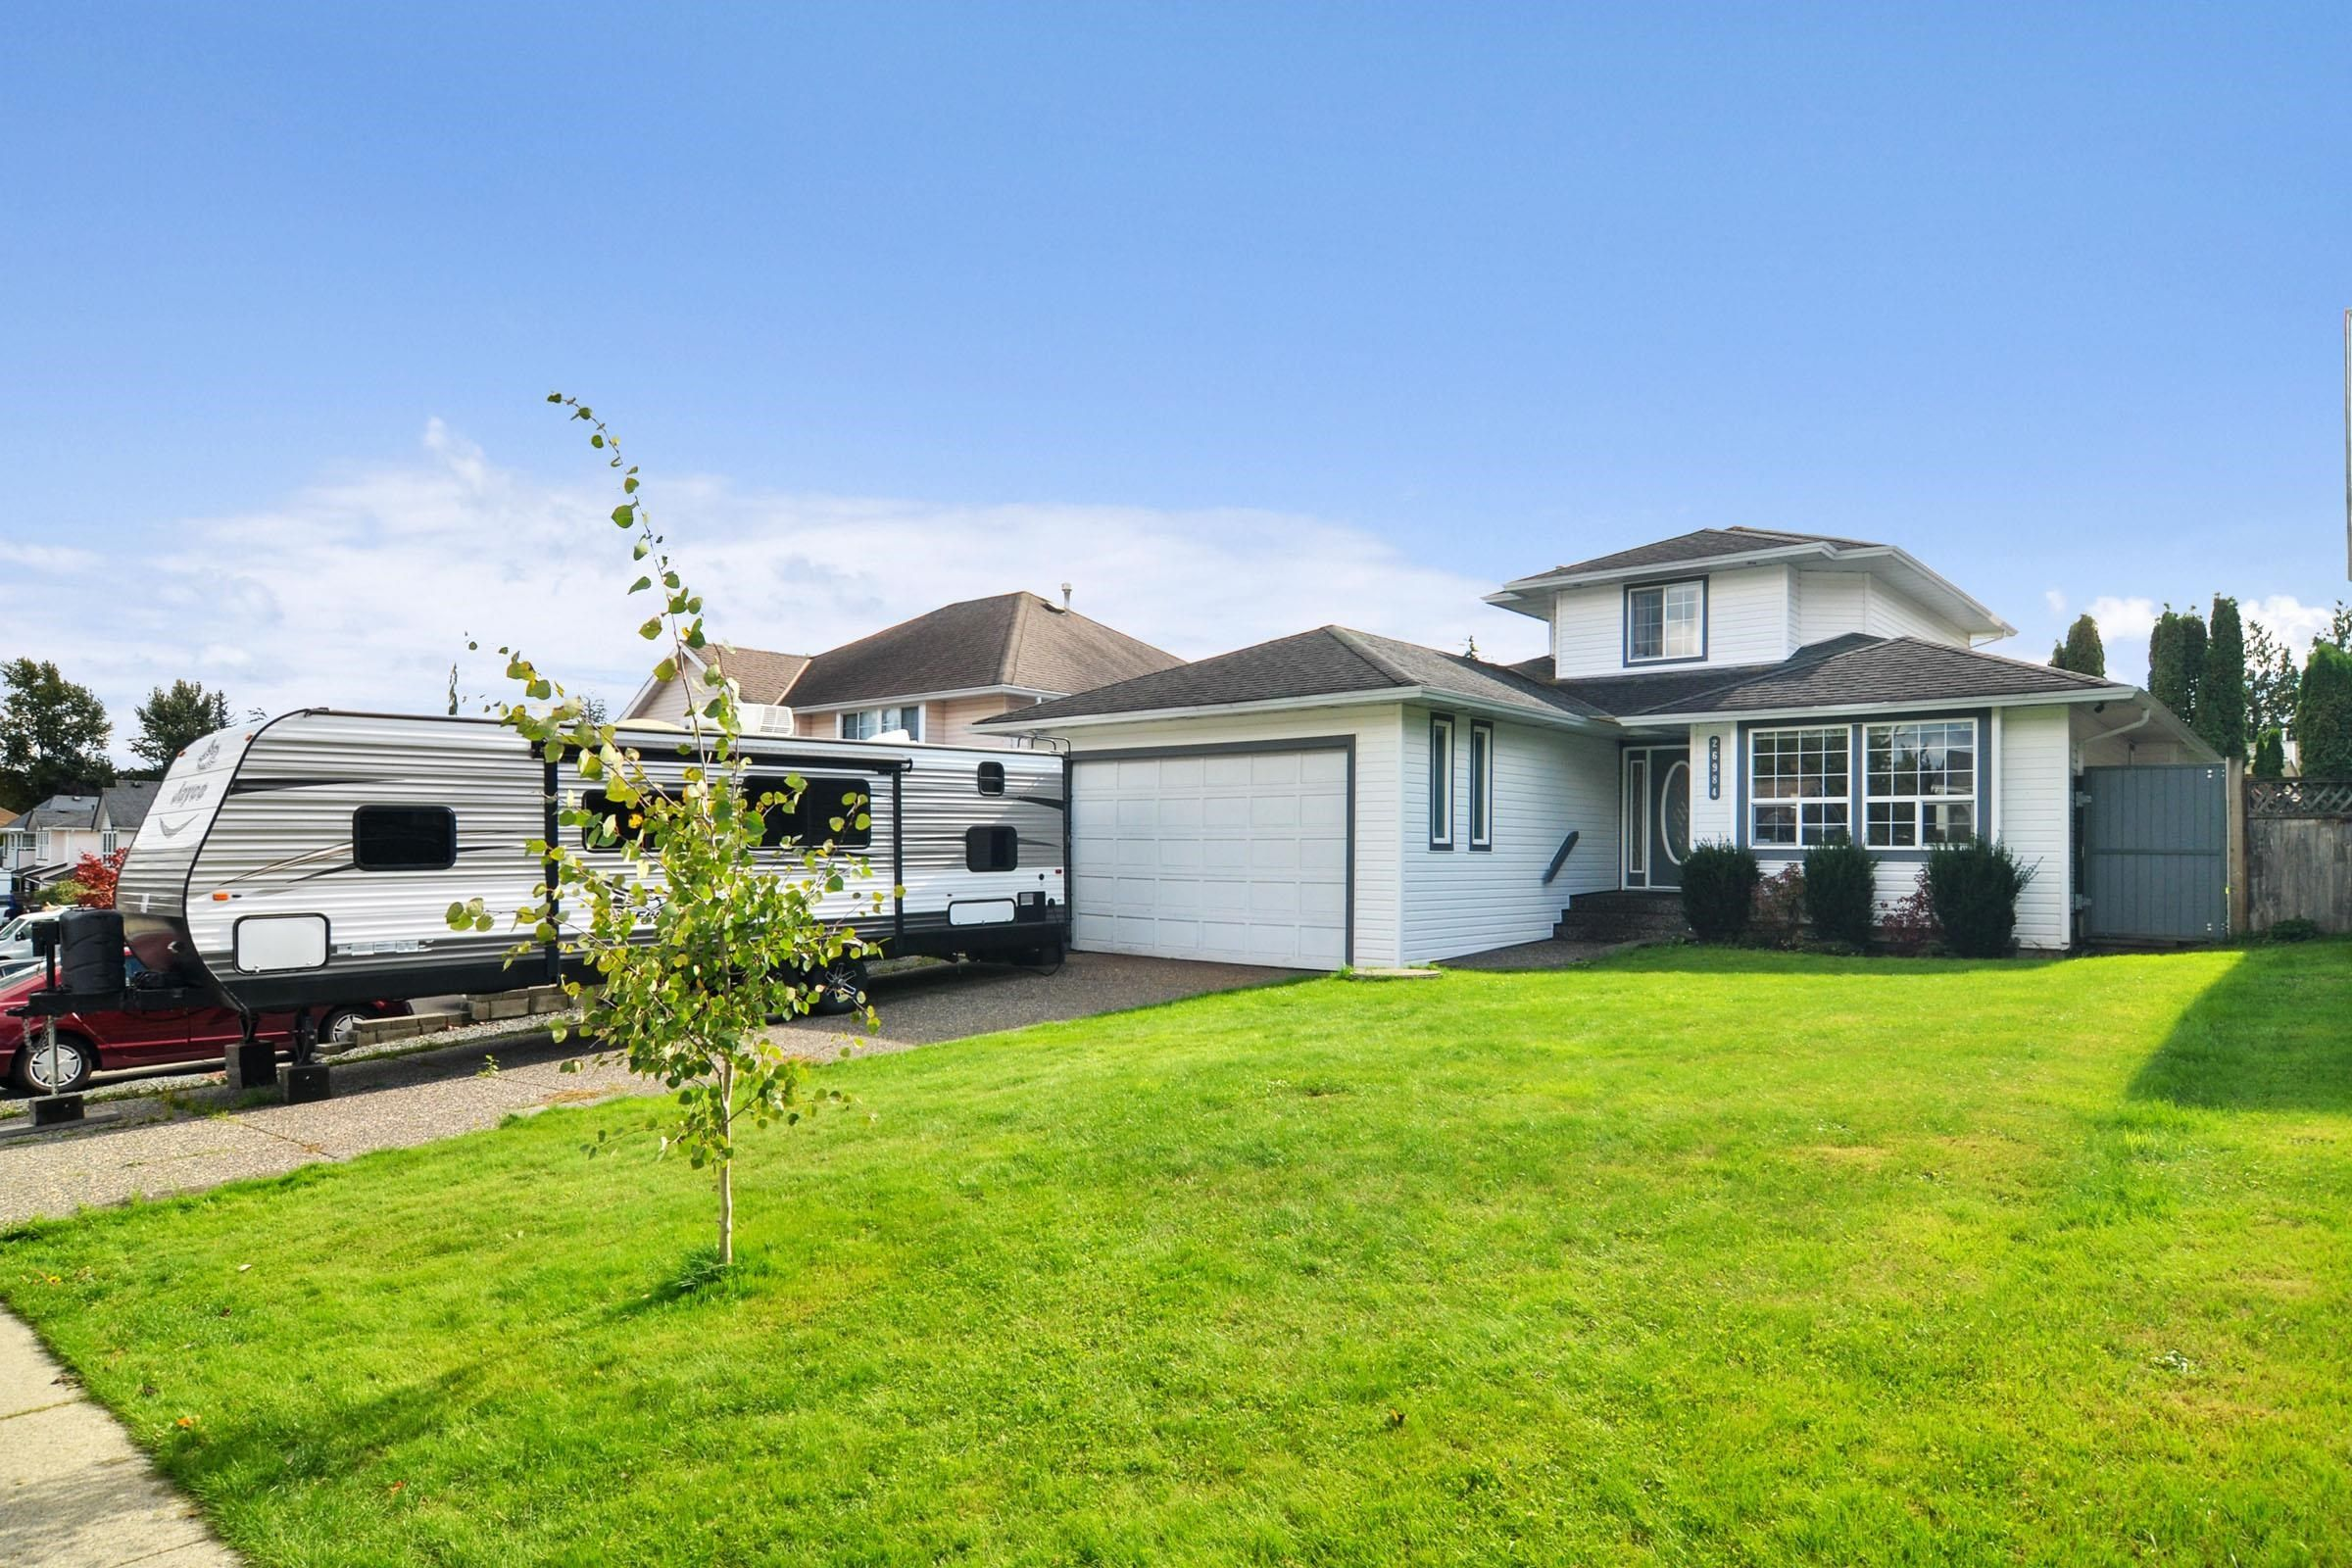 Main Photo: 26984 27B Avenue in Langley: Aldergrove Langley House for sale : MLS®# R2624154